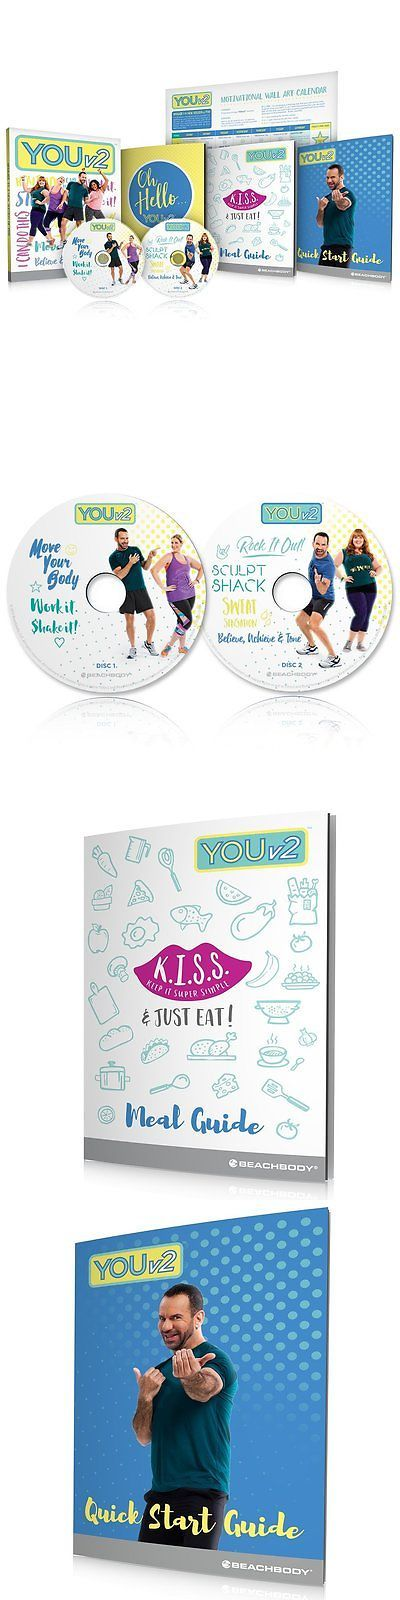 Fitness DVDs 109130: Youv2 Beginner Health And Fitness Workout Dvd Program And Meal Guide -> BUY IT NOW ONLY: $61.08 on eBay!